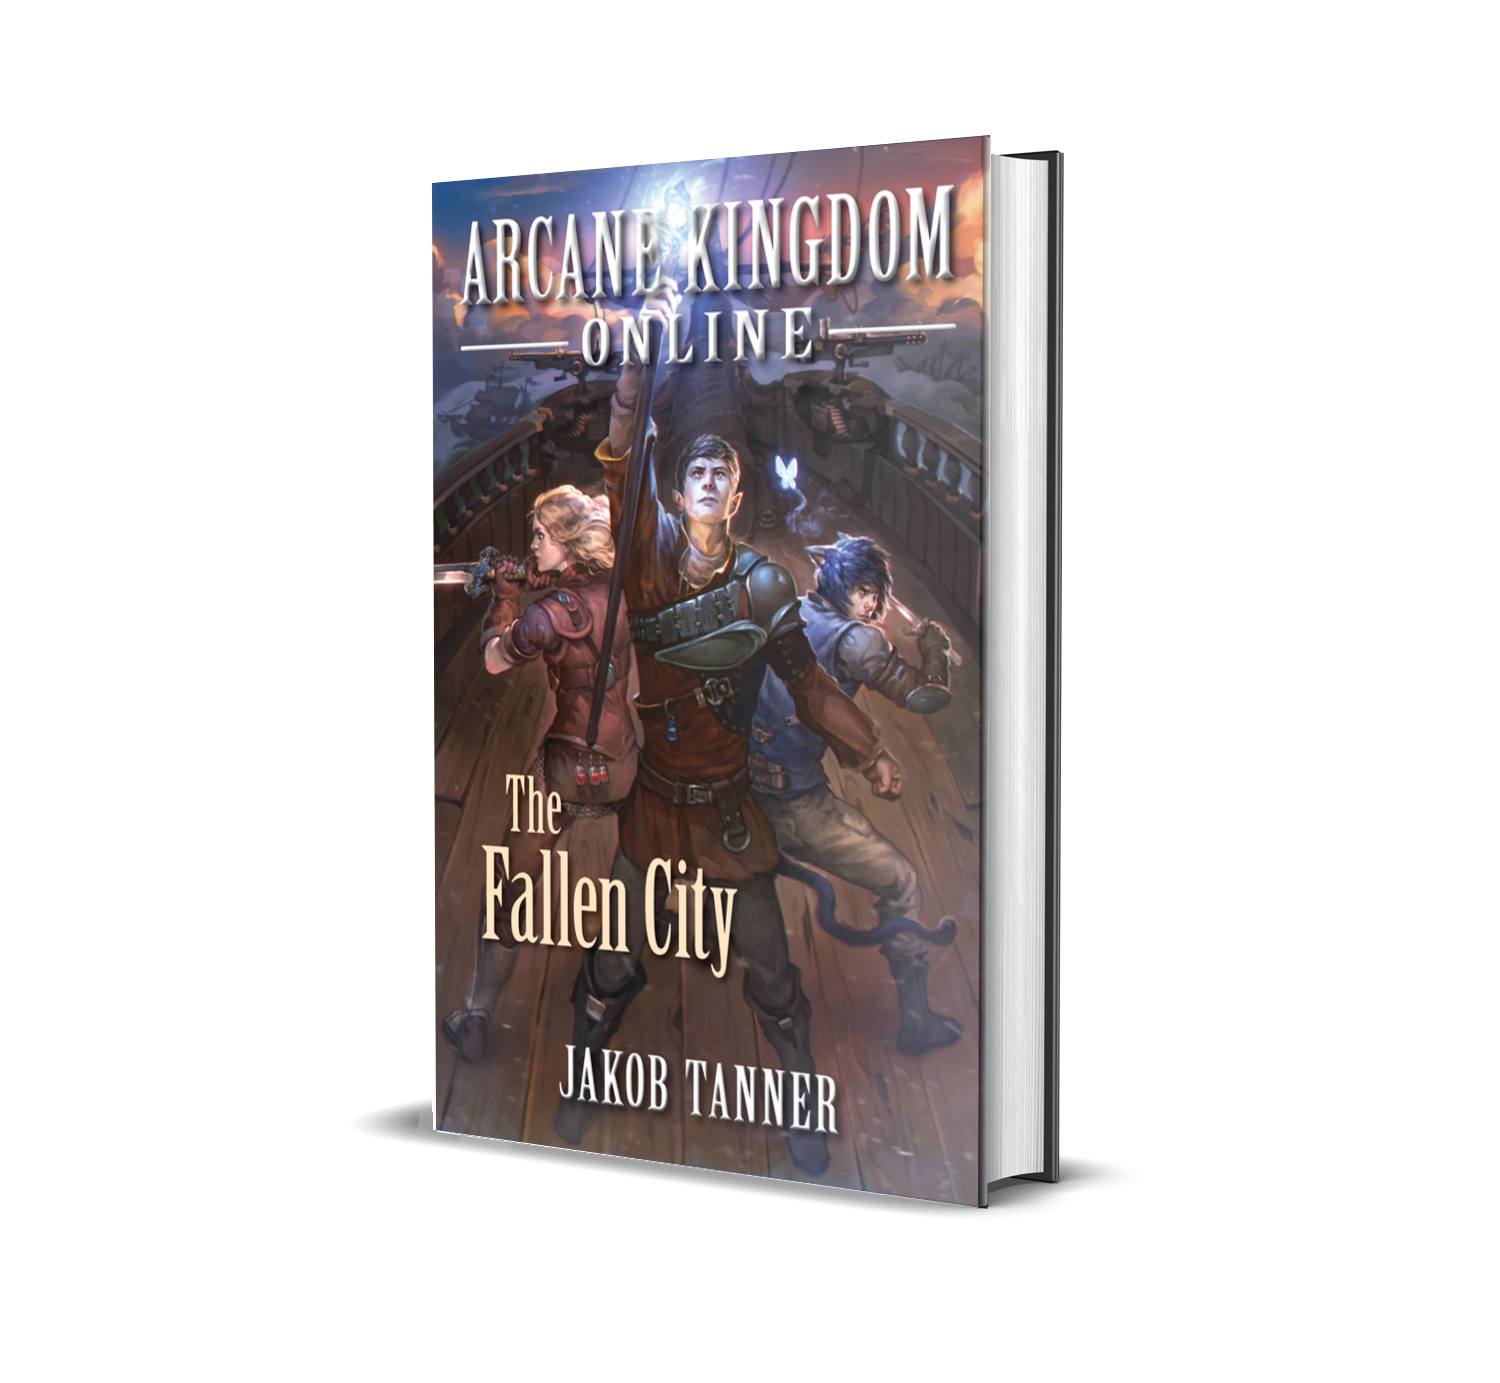 Arcane Kingdom Online: The Fallen City - The real world is gone…Now Clay's digital home is under threat.